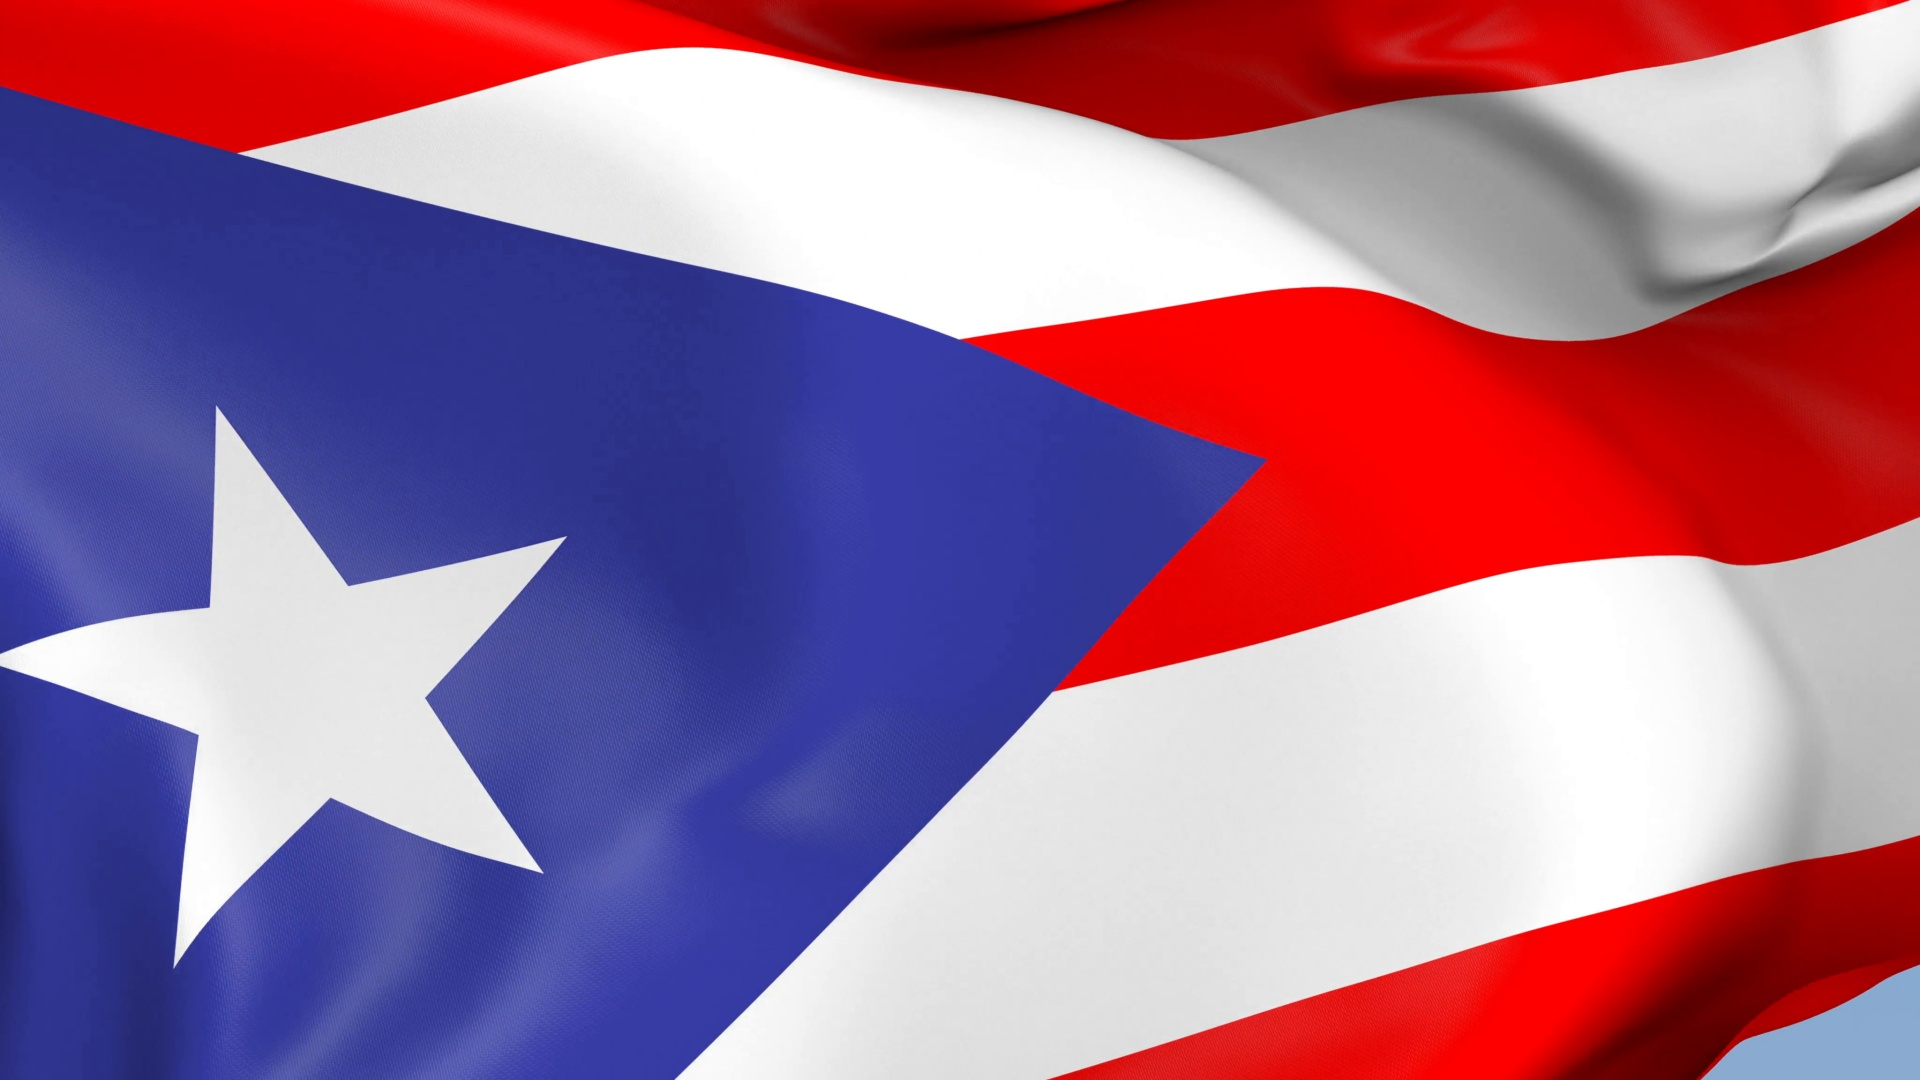 Residential habilitation Association showing support for Puerto Rico